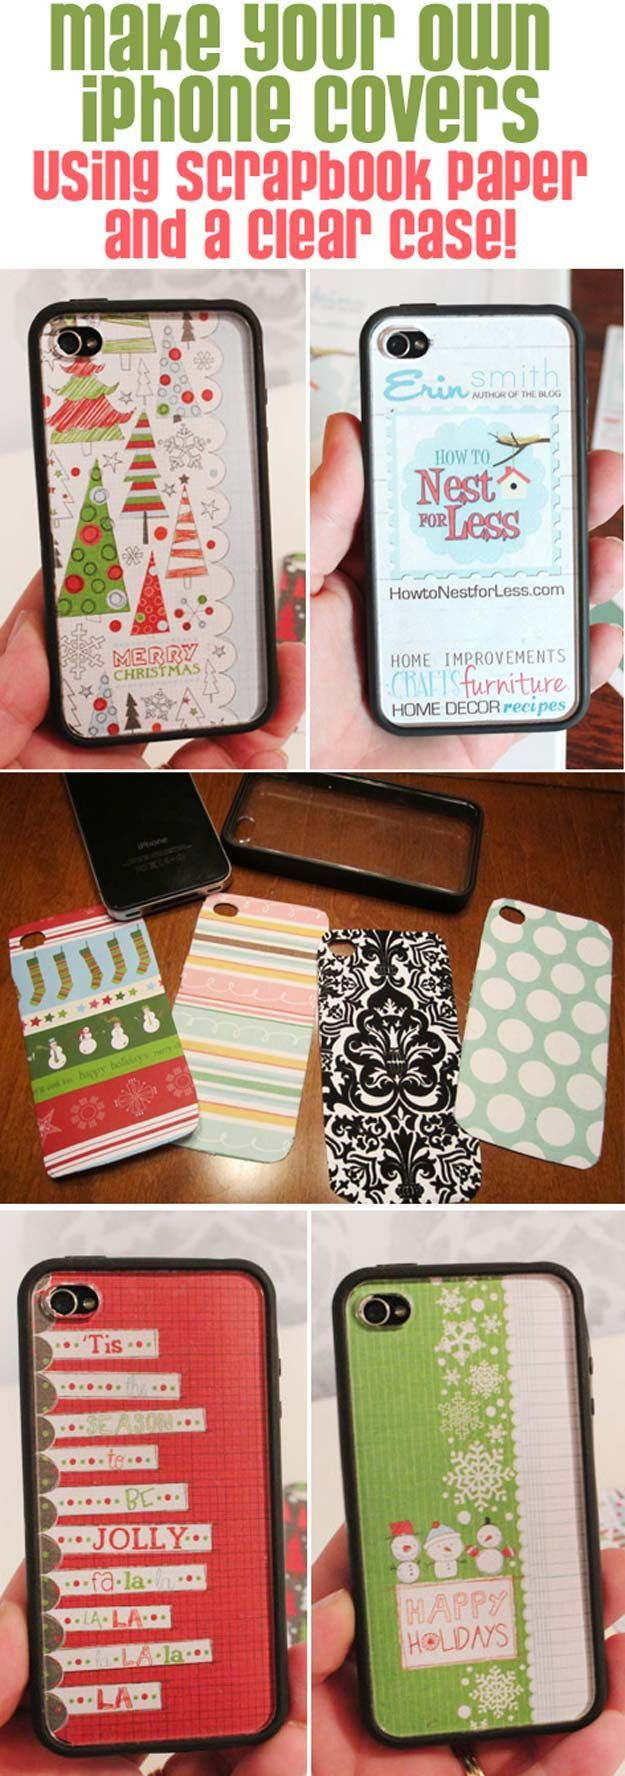 How to scrapbook with glitter paper - Diy Iphone Case Makeovers Scrapbook Paper Iphone Case Easy Diy Projects And Handmade Crafts